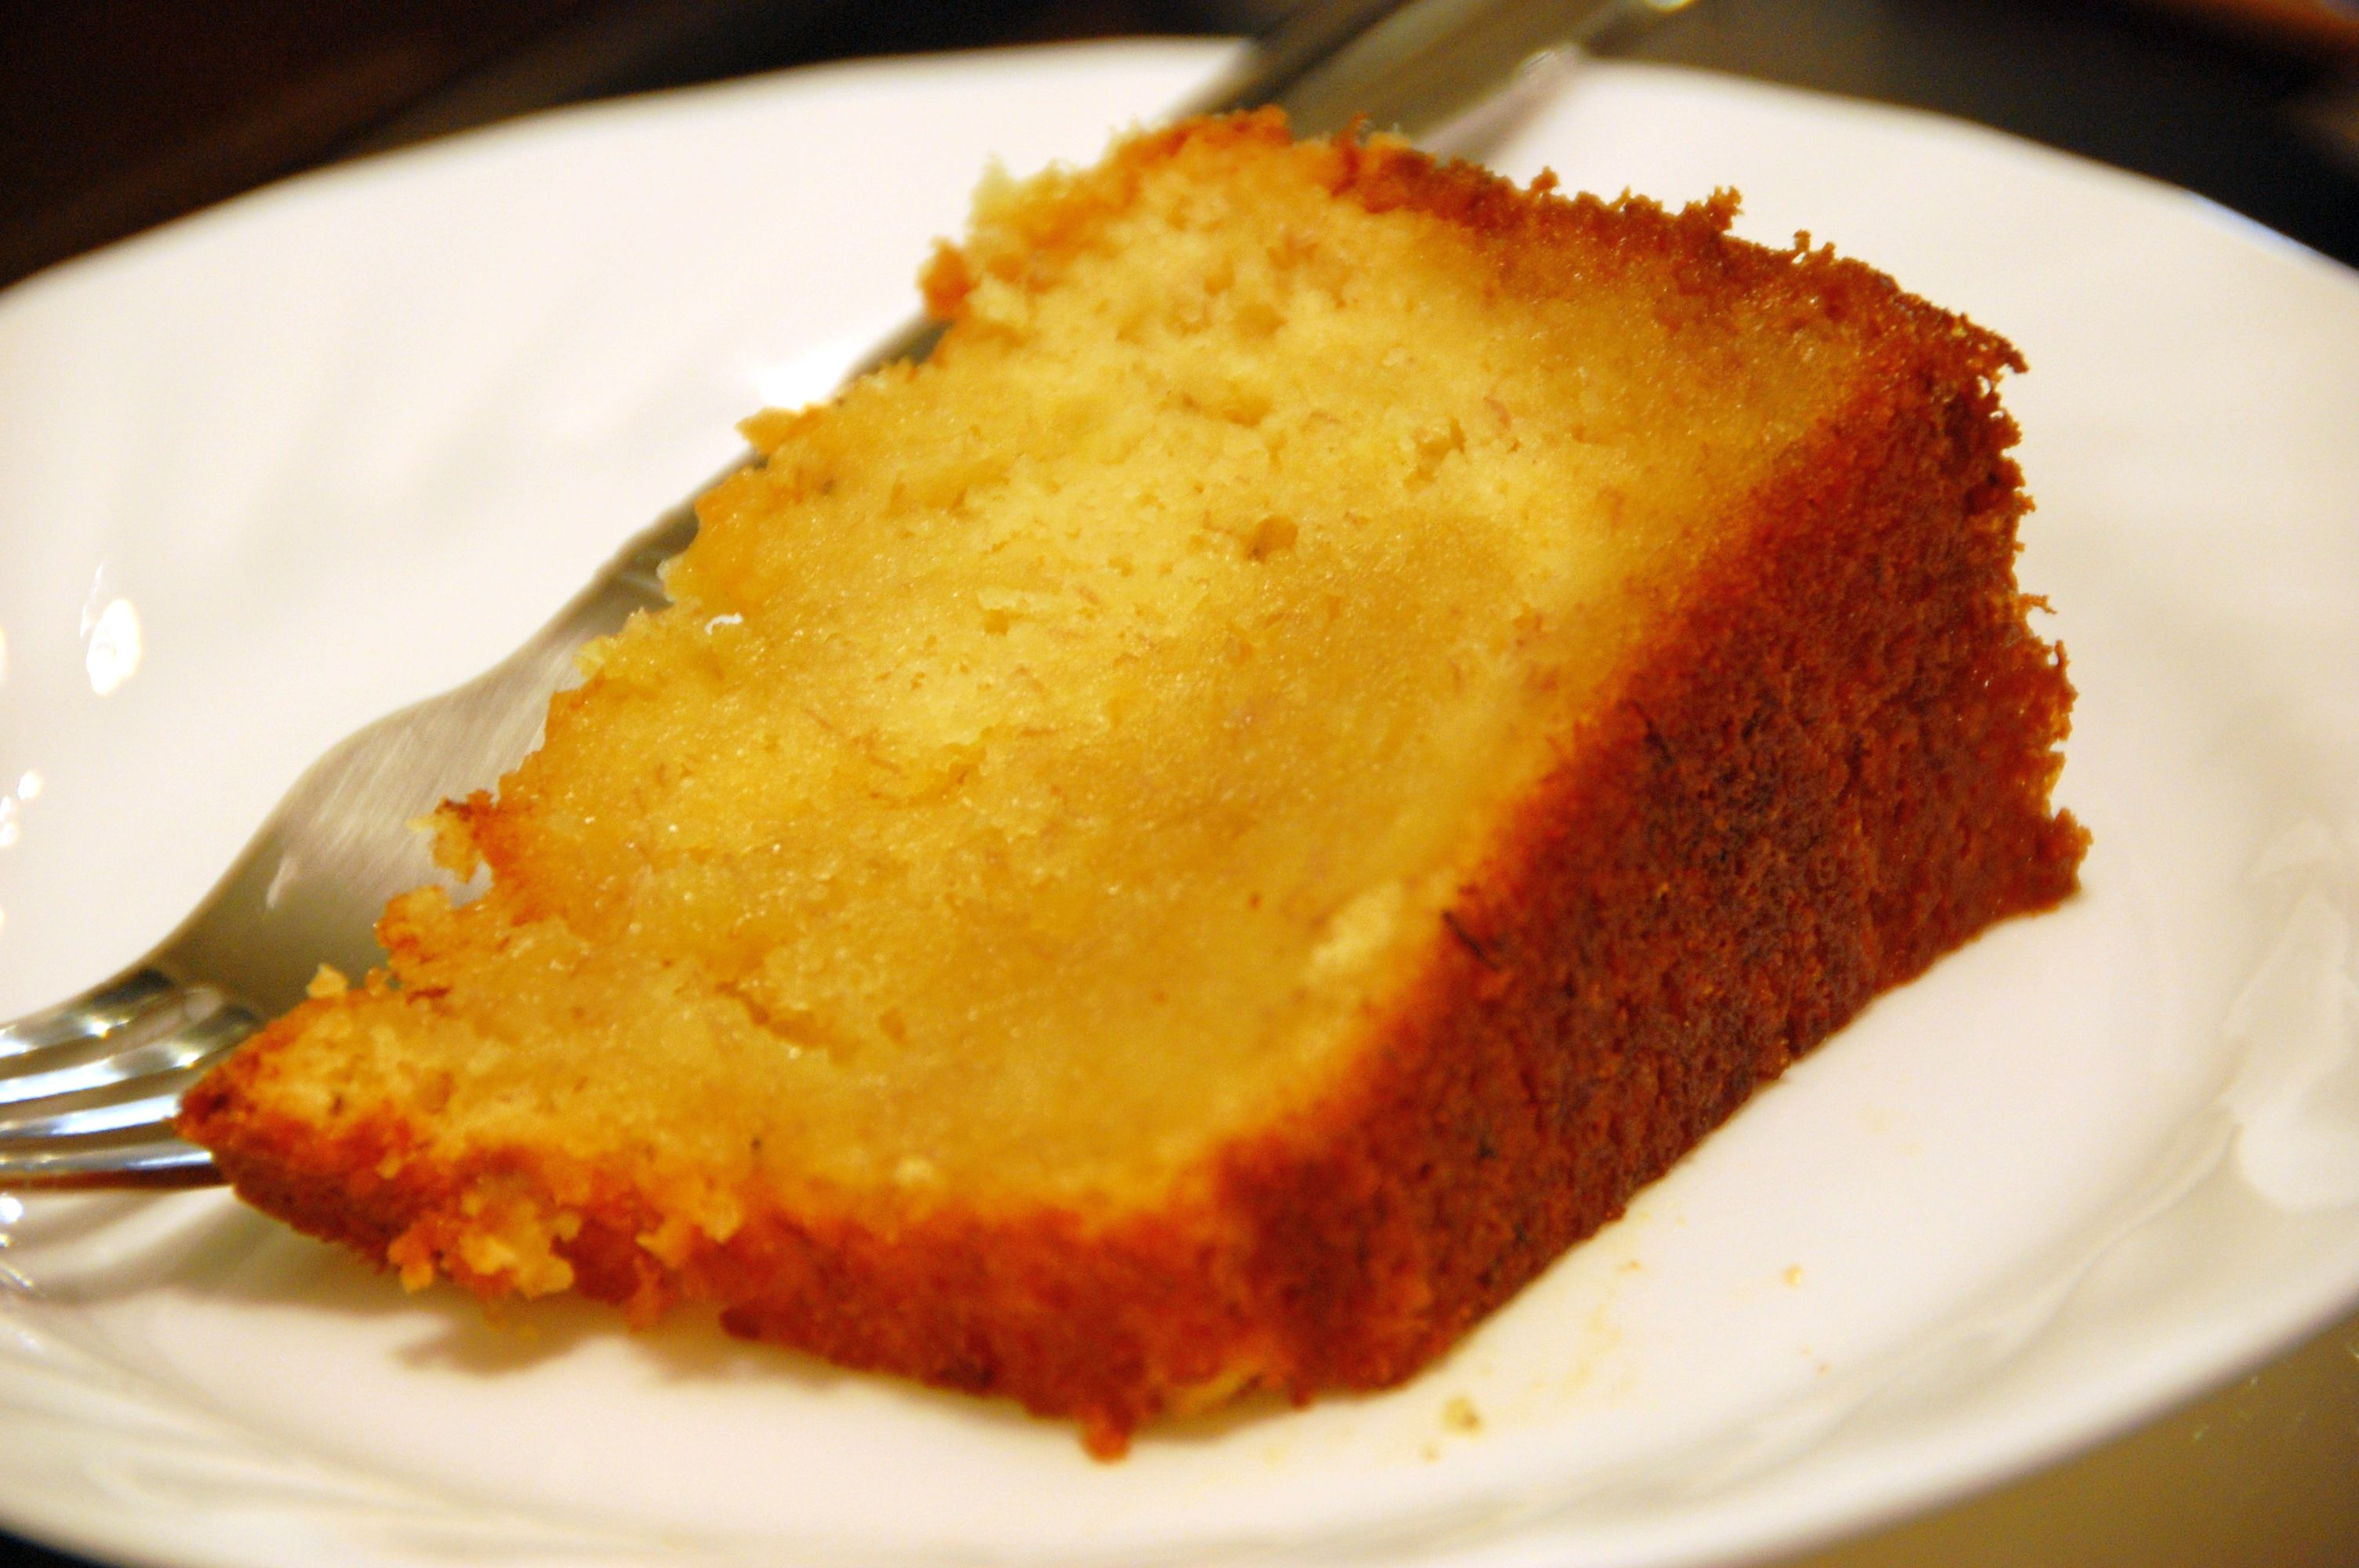 Banana Rum Cake — The 350 Degree Oven